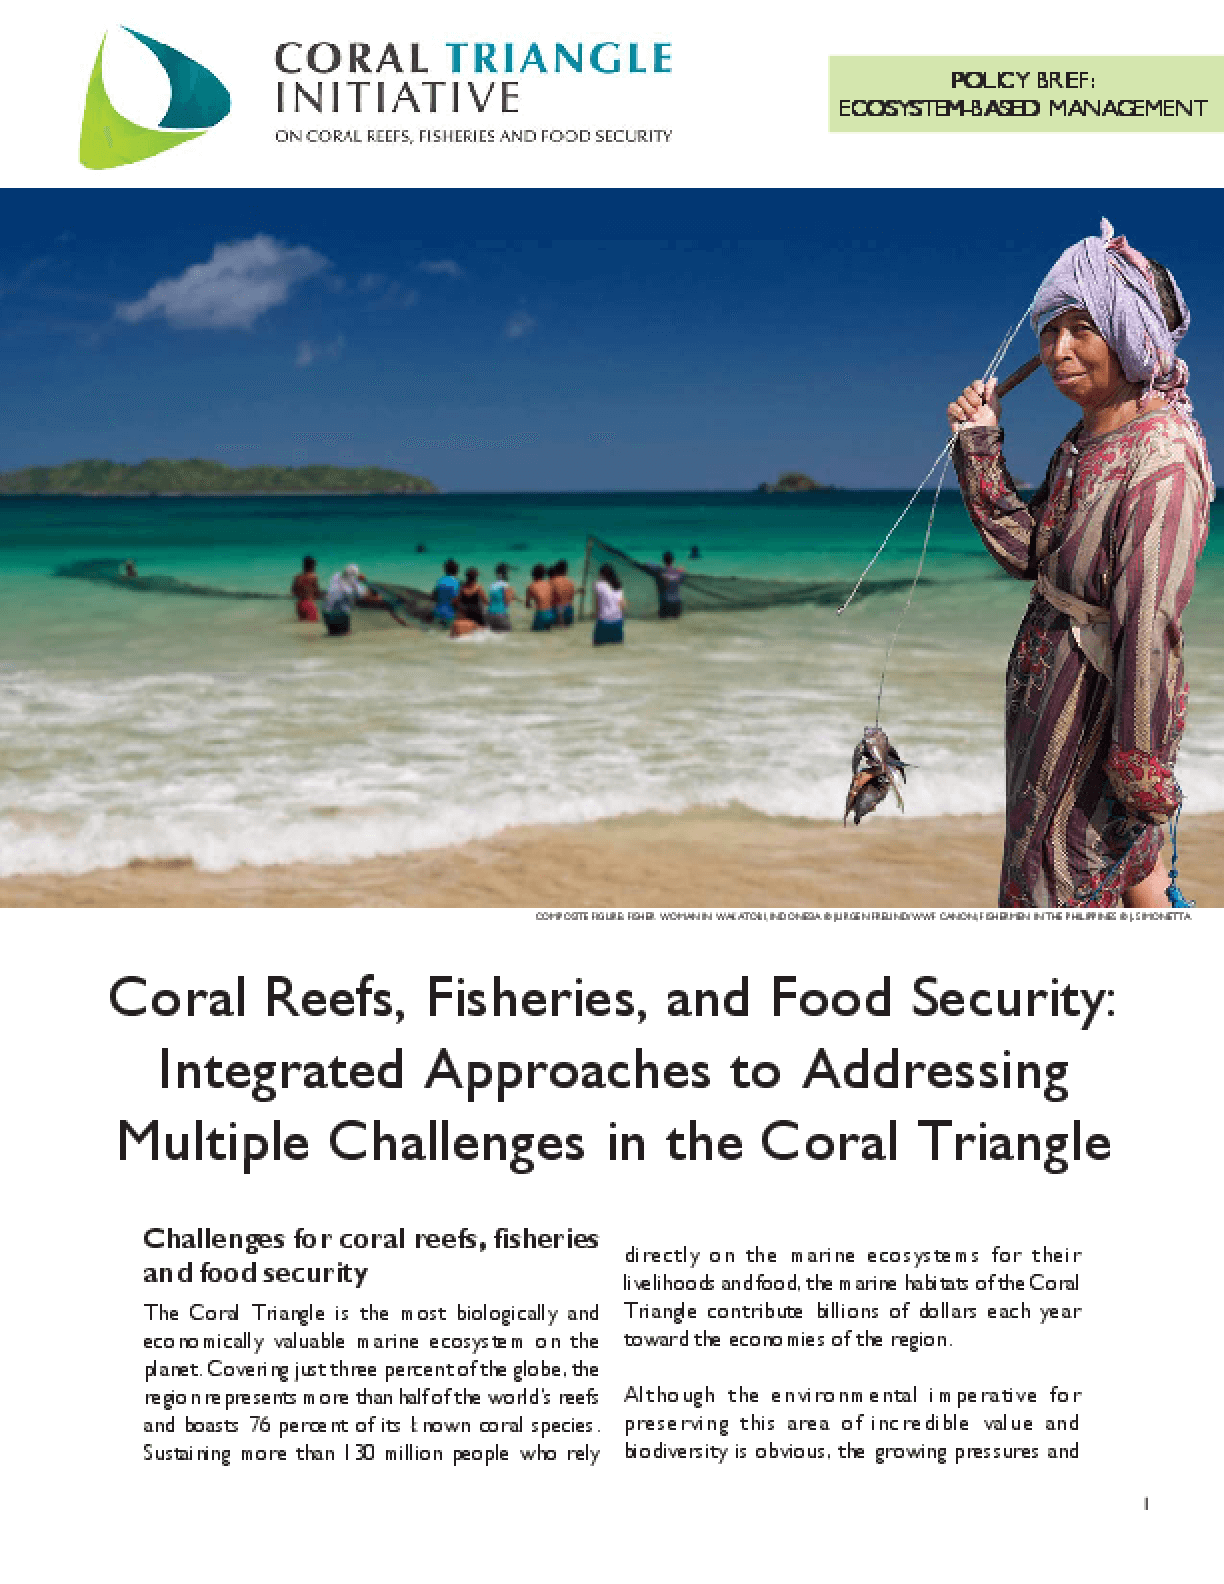 Coral Reefs, Fisheries, and Food Security: Integrated Approaches to Addressing Multiple Challenges in the Coral Triangle